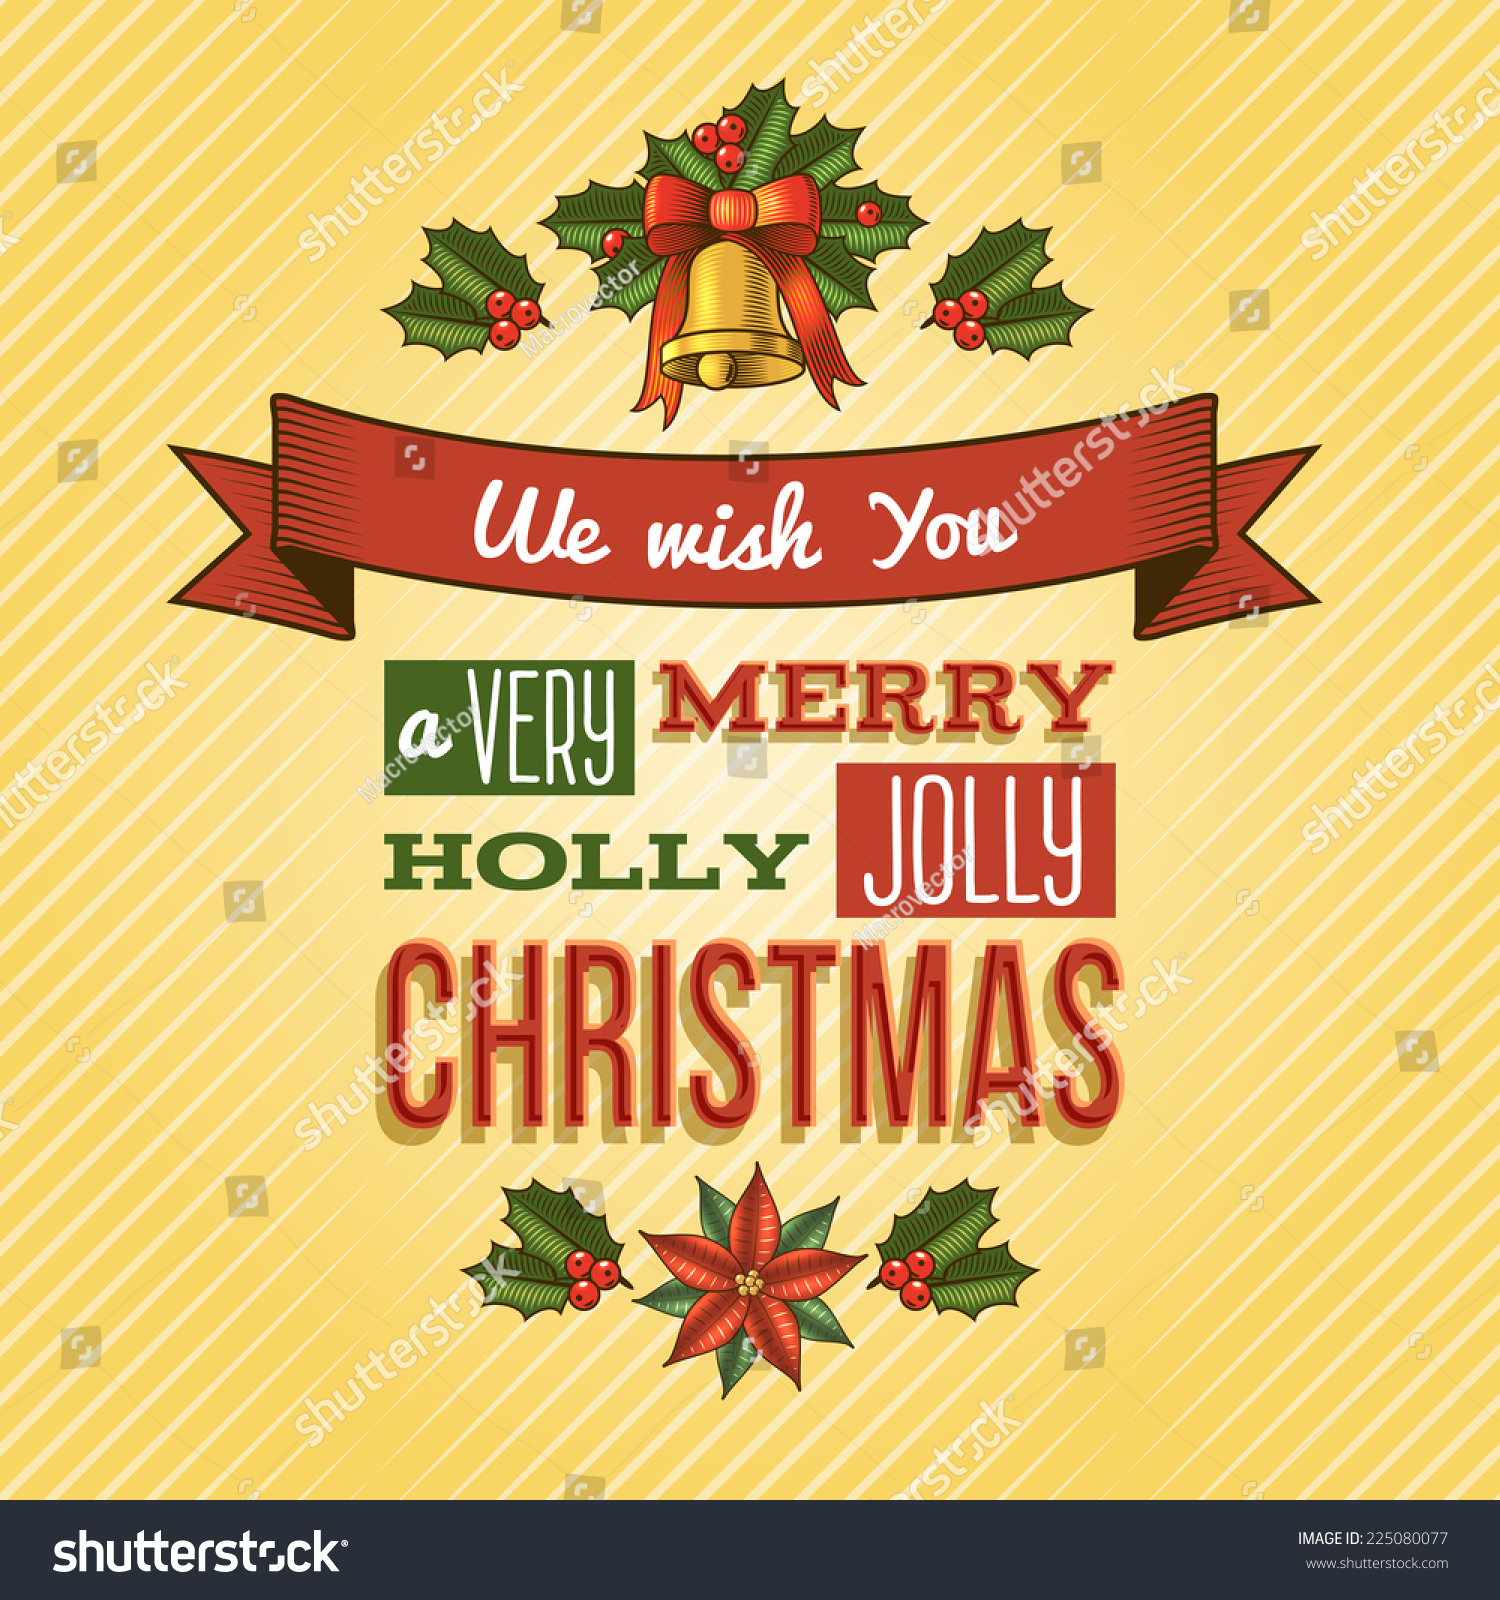 Merry Christmas New Year Holiday Ornament Stock Vector 225080077 ...